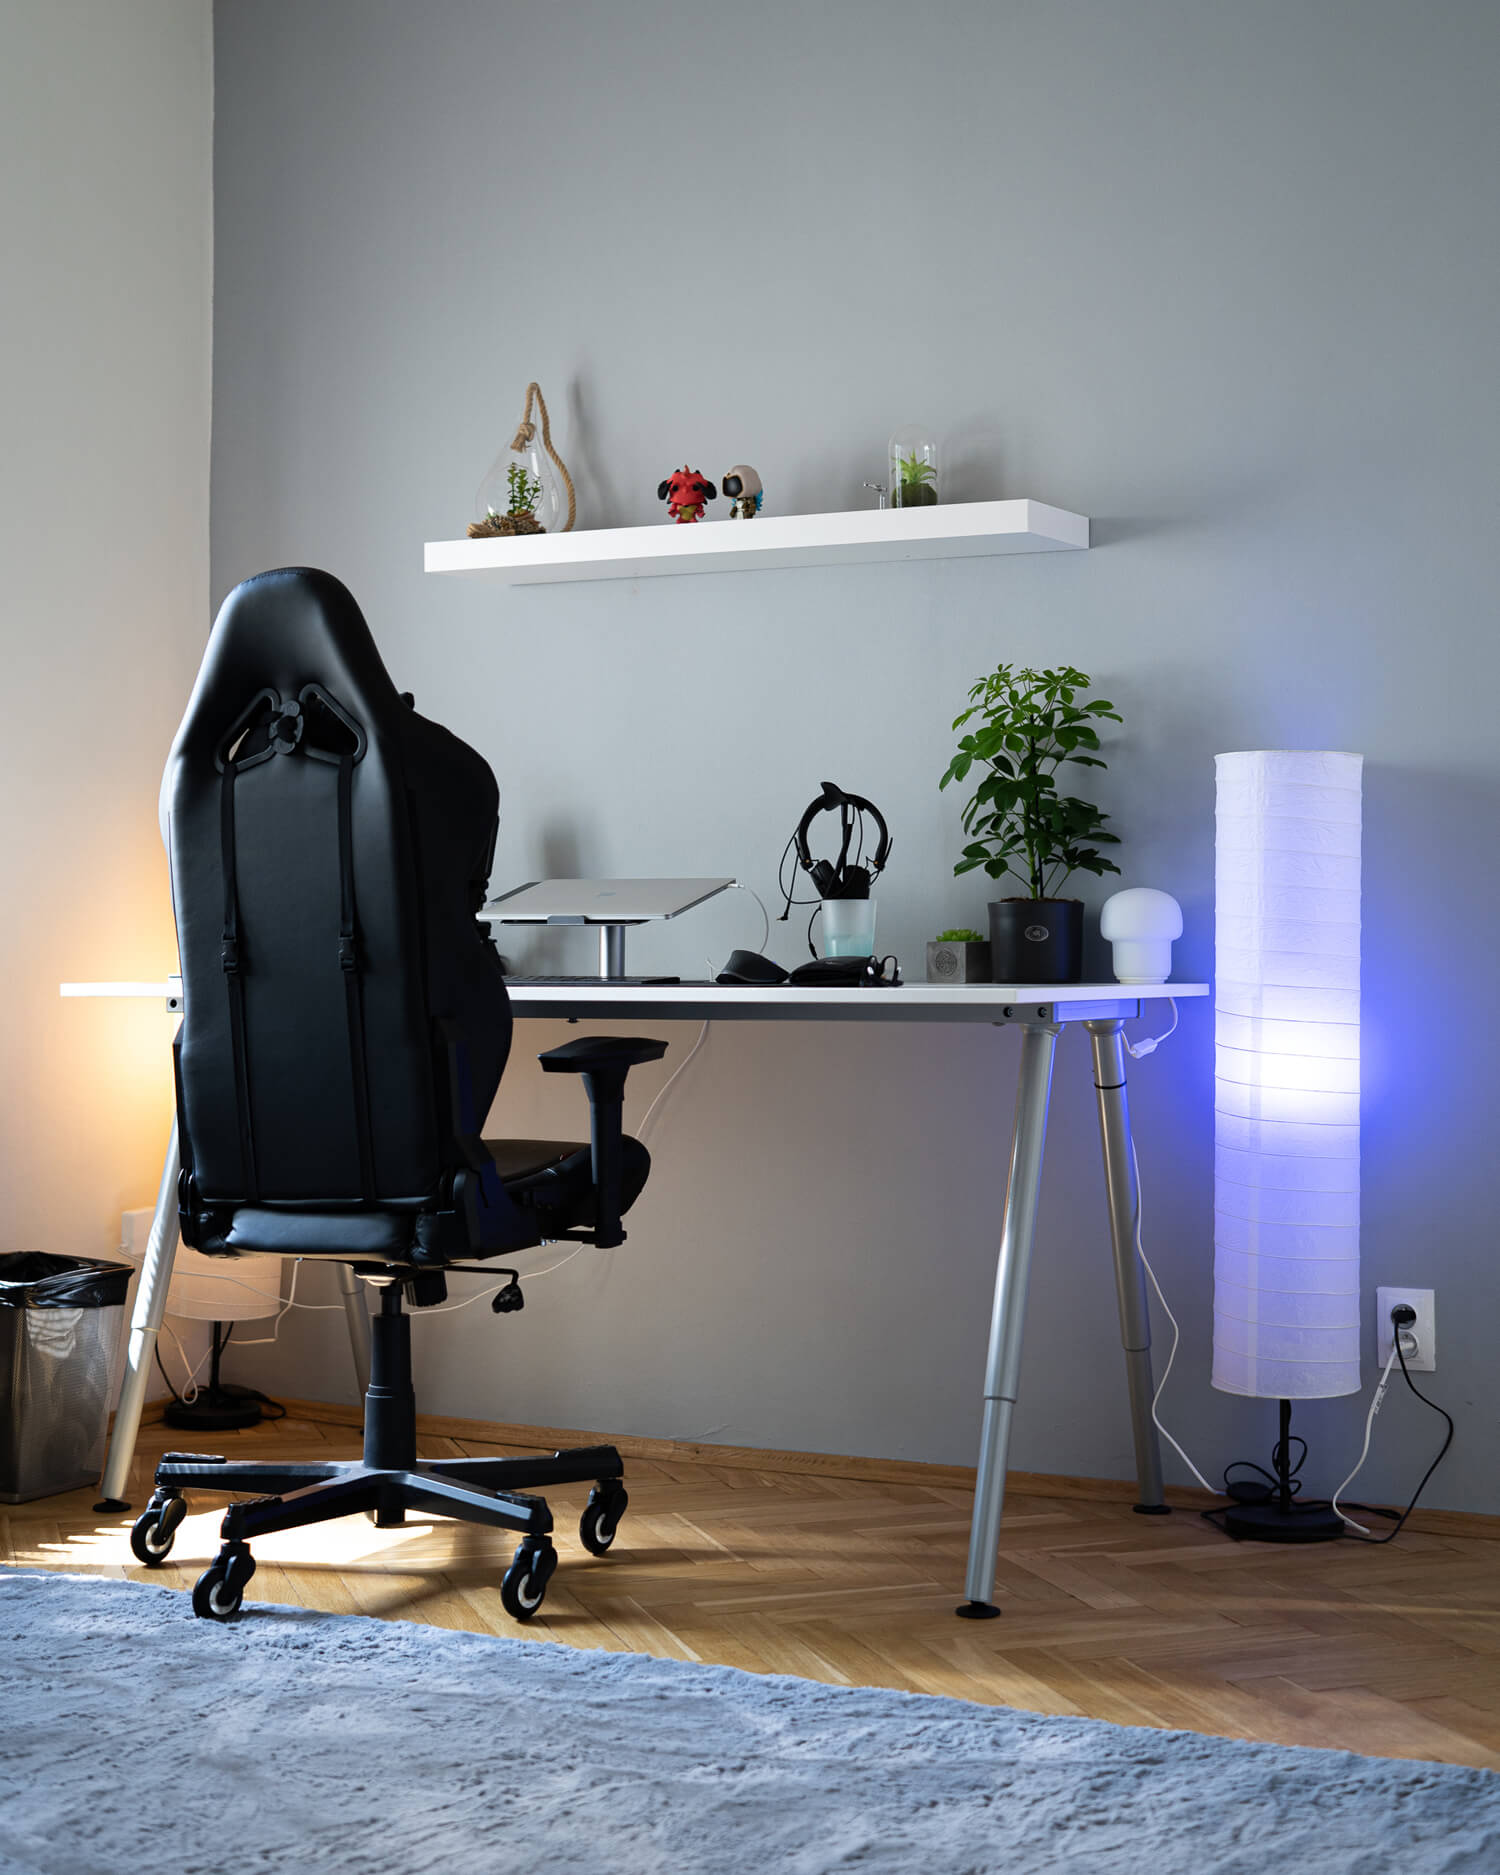 IKEA is a popular choice for building a maker station. It allows to combine different table tops, legs or trestles, resulting in a custom desk built for your needs